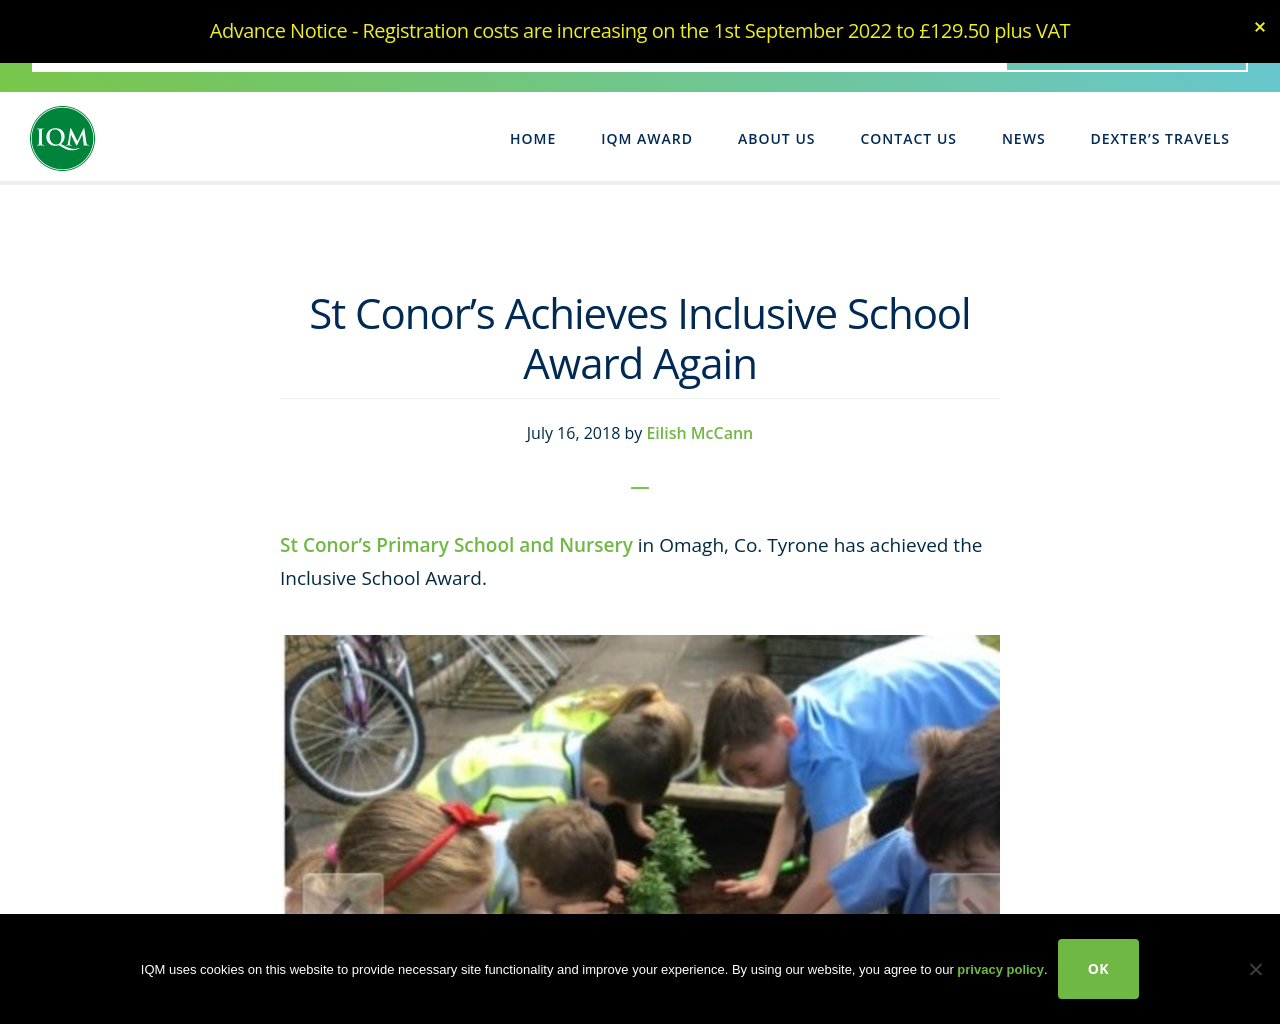 St Conor's Primary School and Nursery in Omagh, Co. Tyrone has achieved the Inclusive School Award.